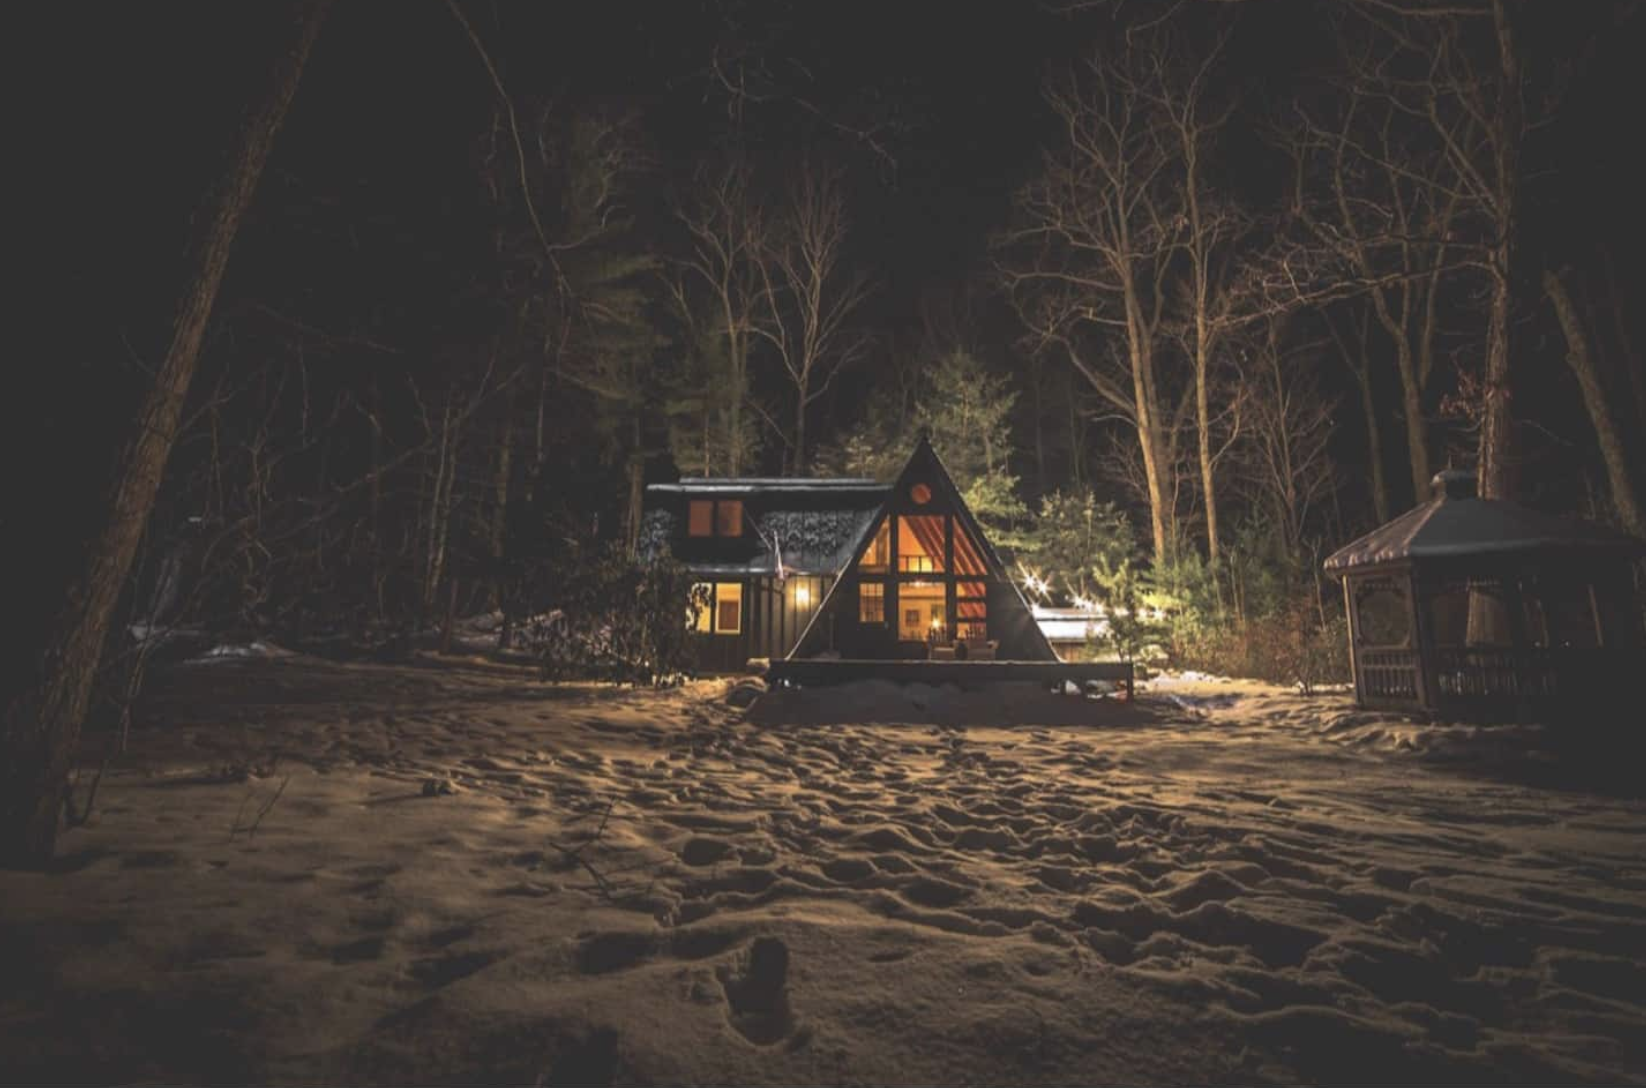 A black a frame sustainable Catskills cabin from airbnb for 8 airbnb locations I would visit right now by Nicole Eva